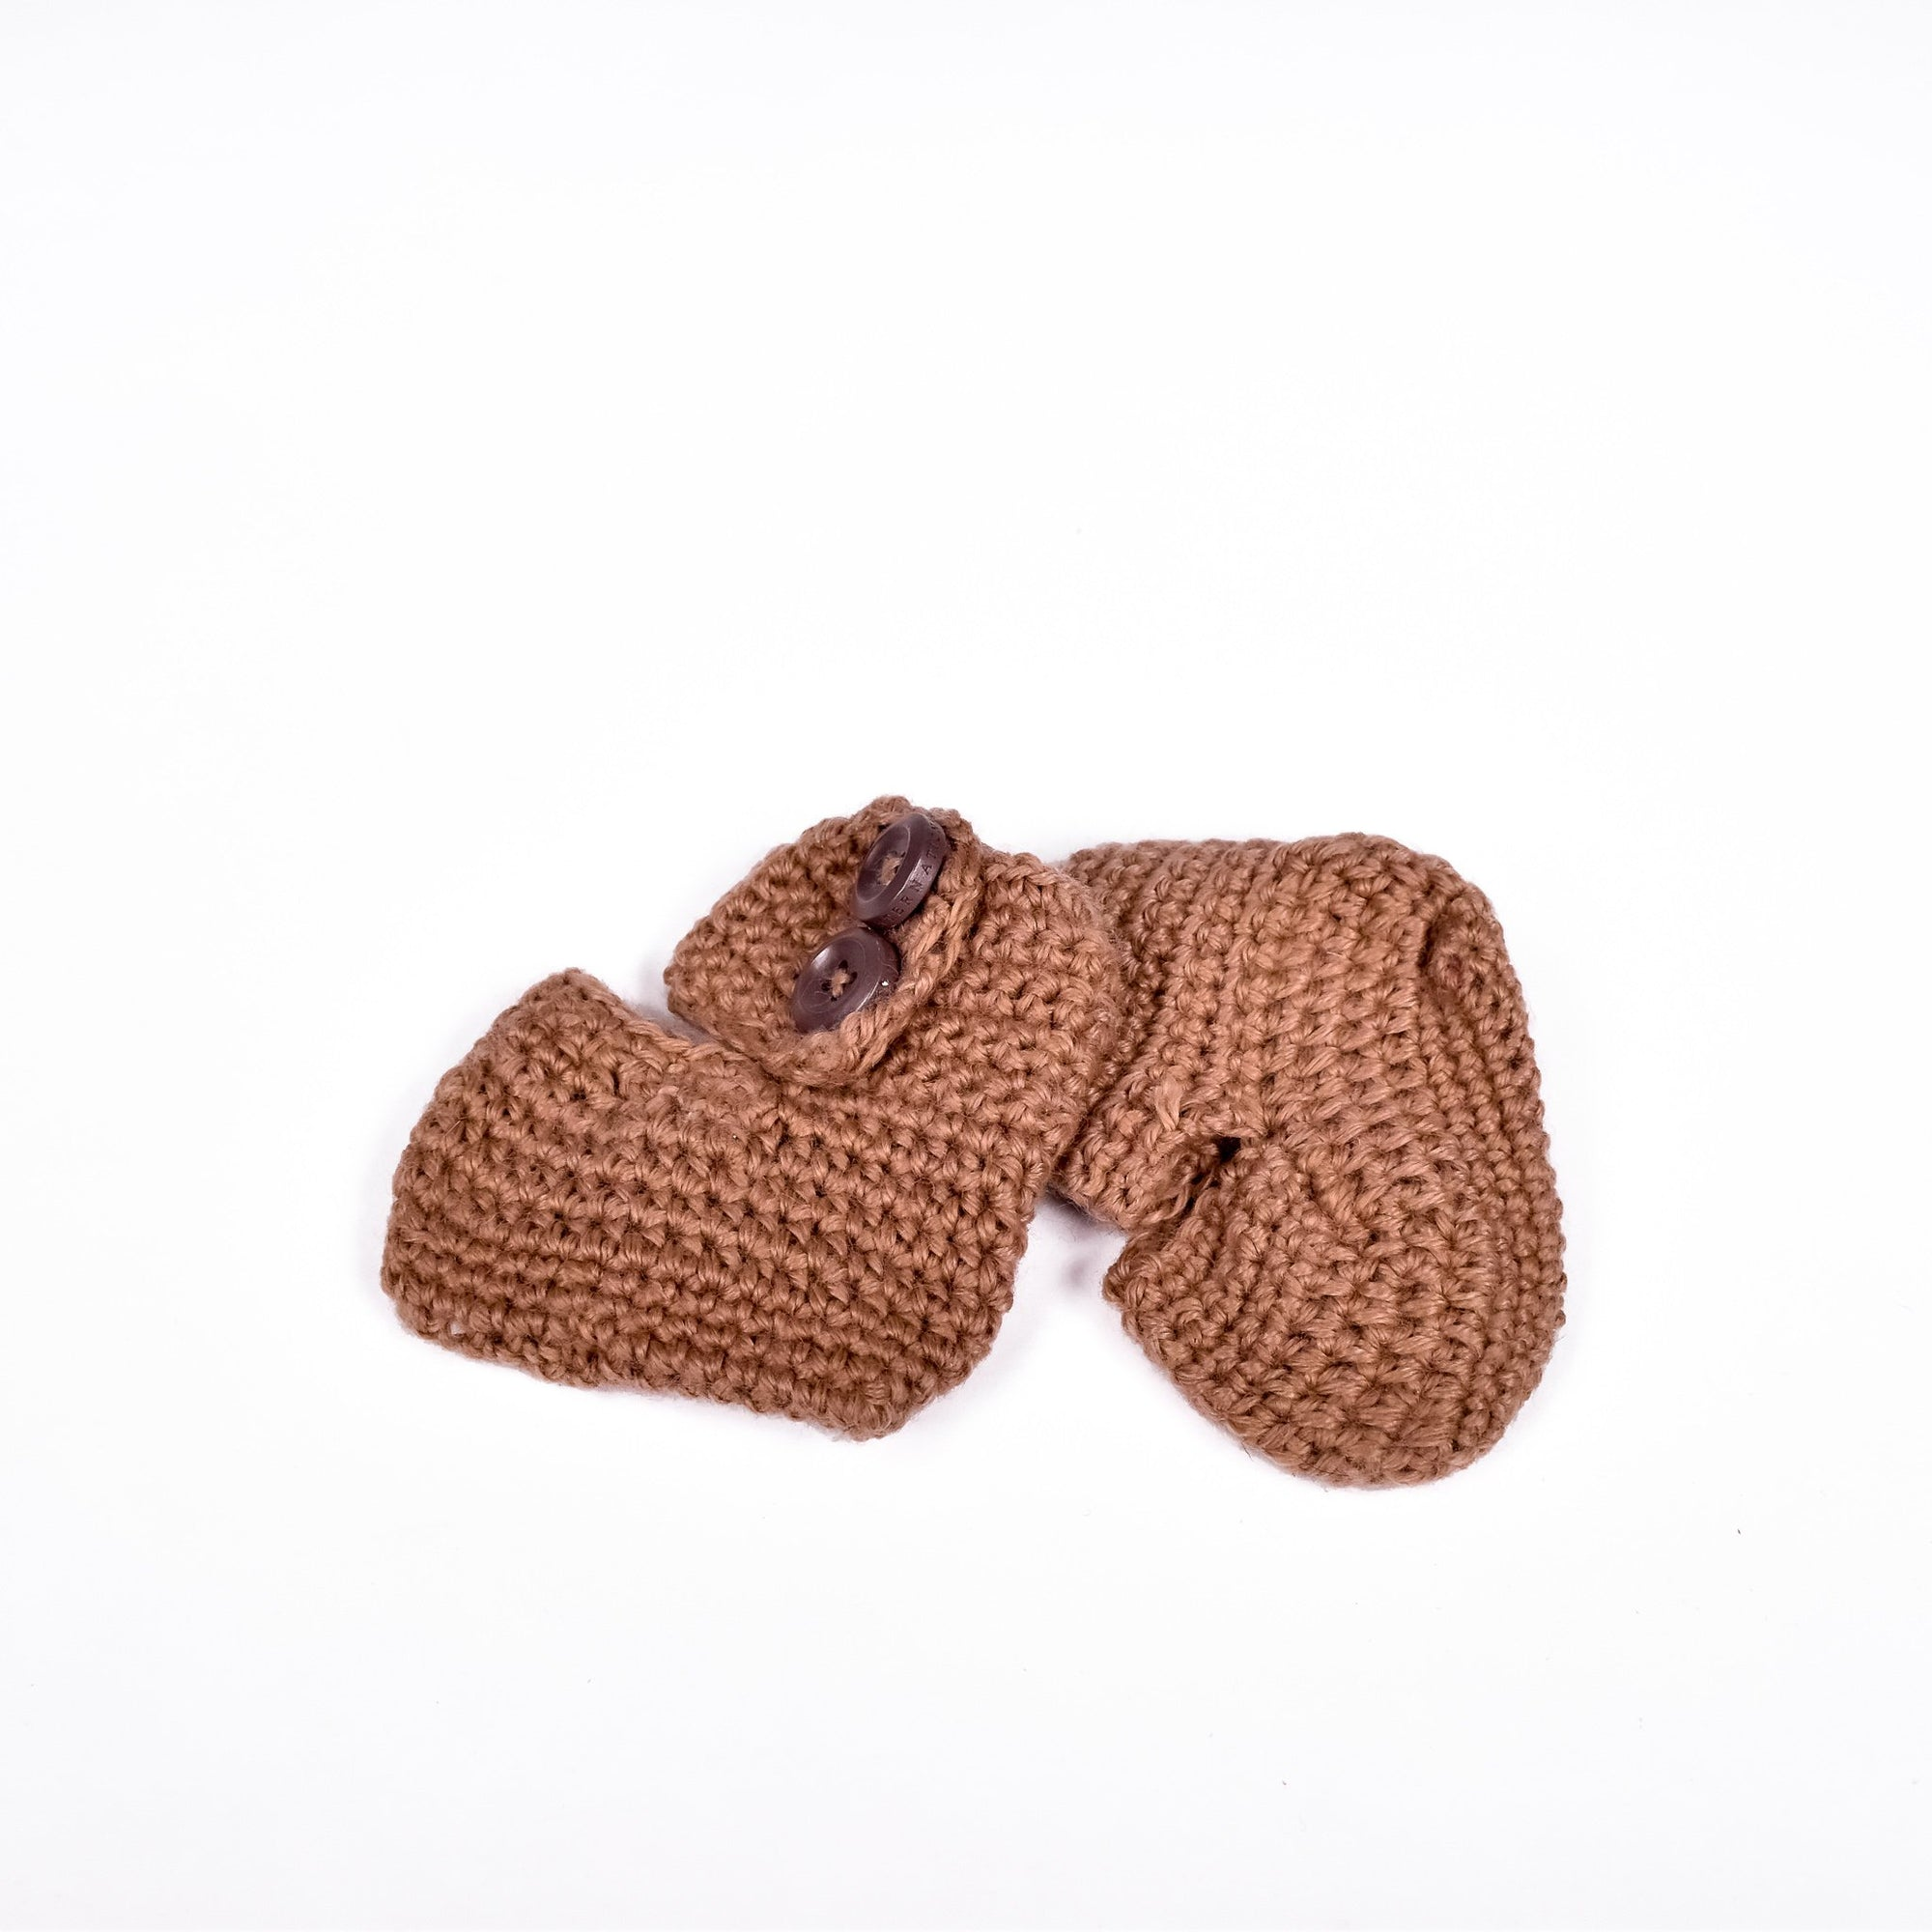 Brown Crochet Moccasins - Krochet Kids - Rug & Weave